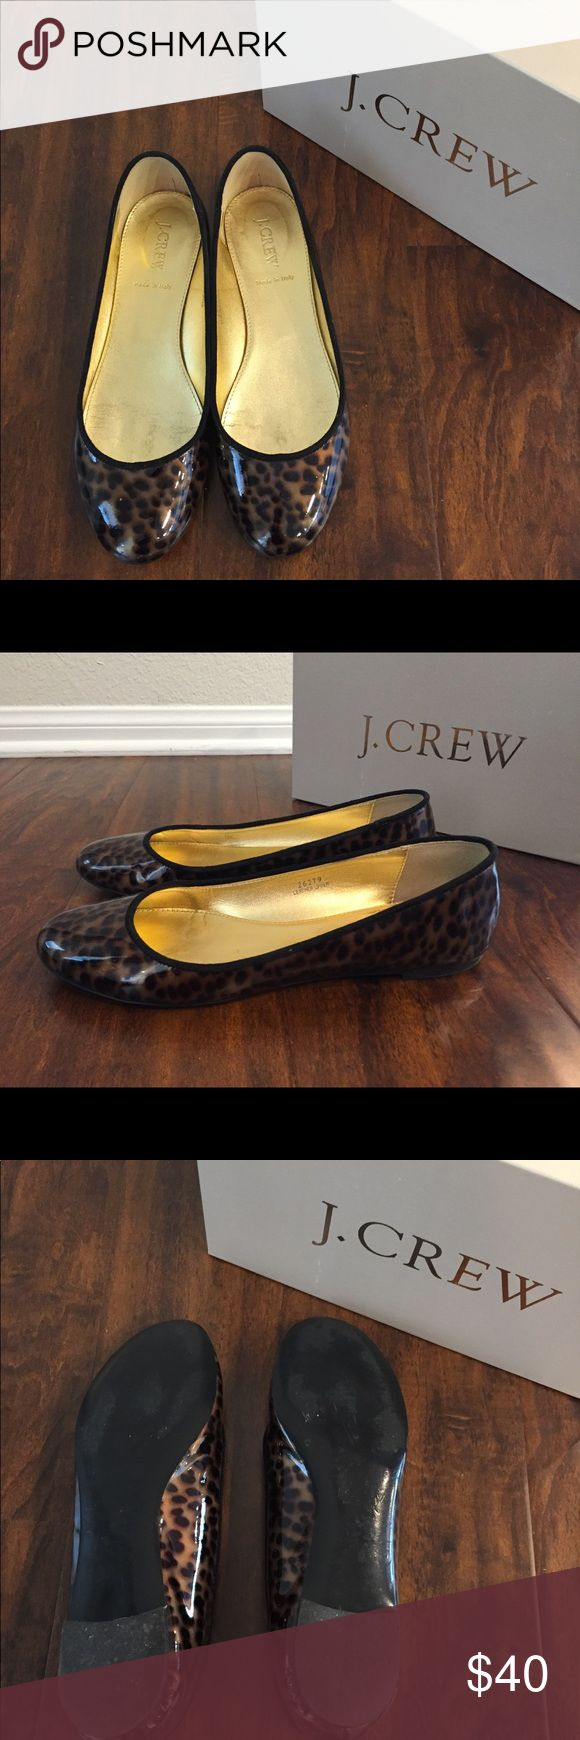 J.Crew Pearlized Animal-print Ballet Flats Size 8 This Classic stunning J.Crew Bronze Tortoise Ballet Flat has a metallic gold interior.  EUC.  Made in Italy.  Women's size 8 J. Crew Shoes Flats & Loafers